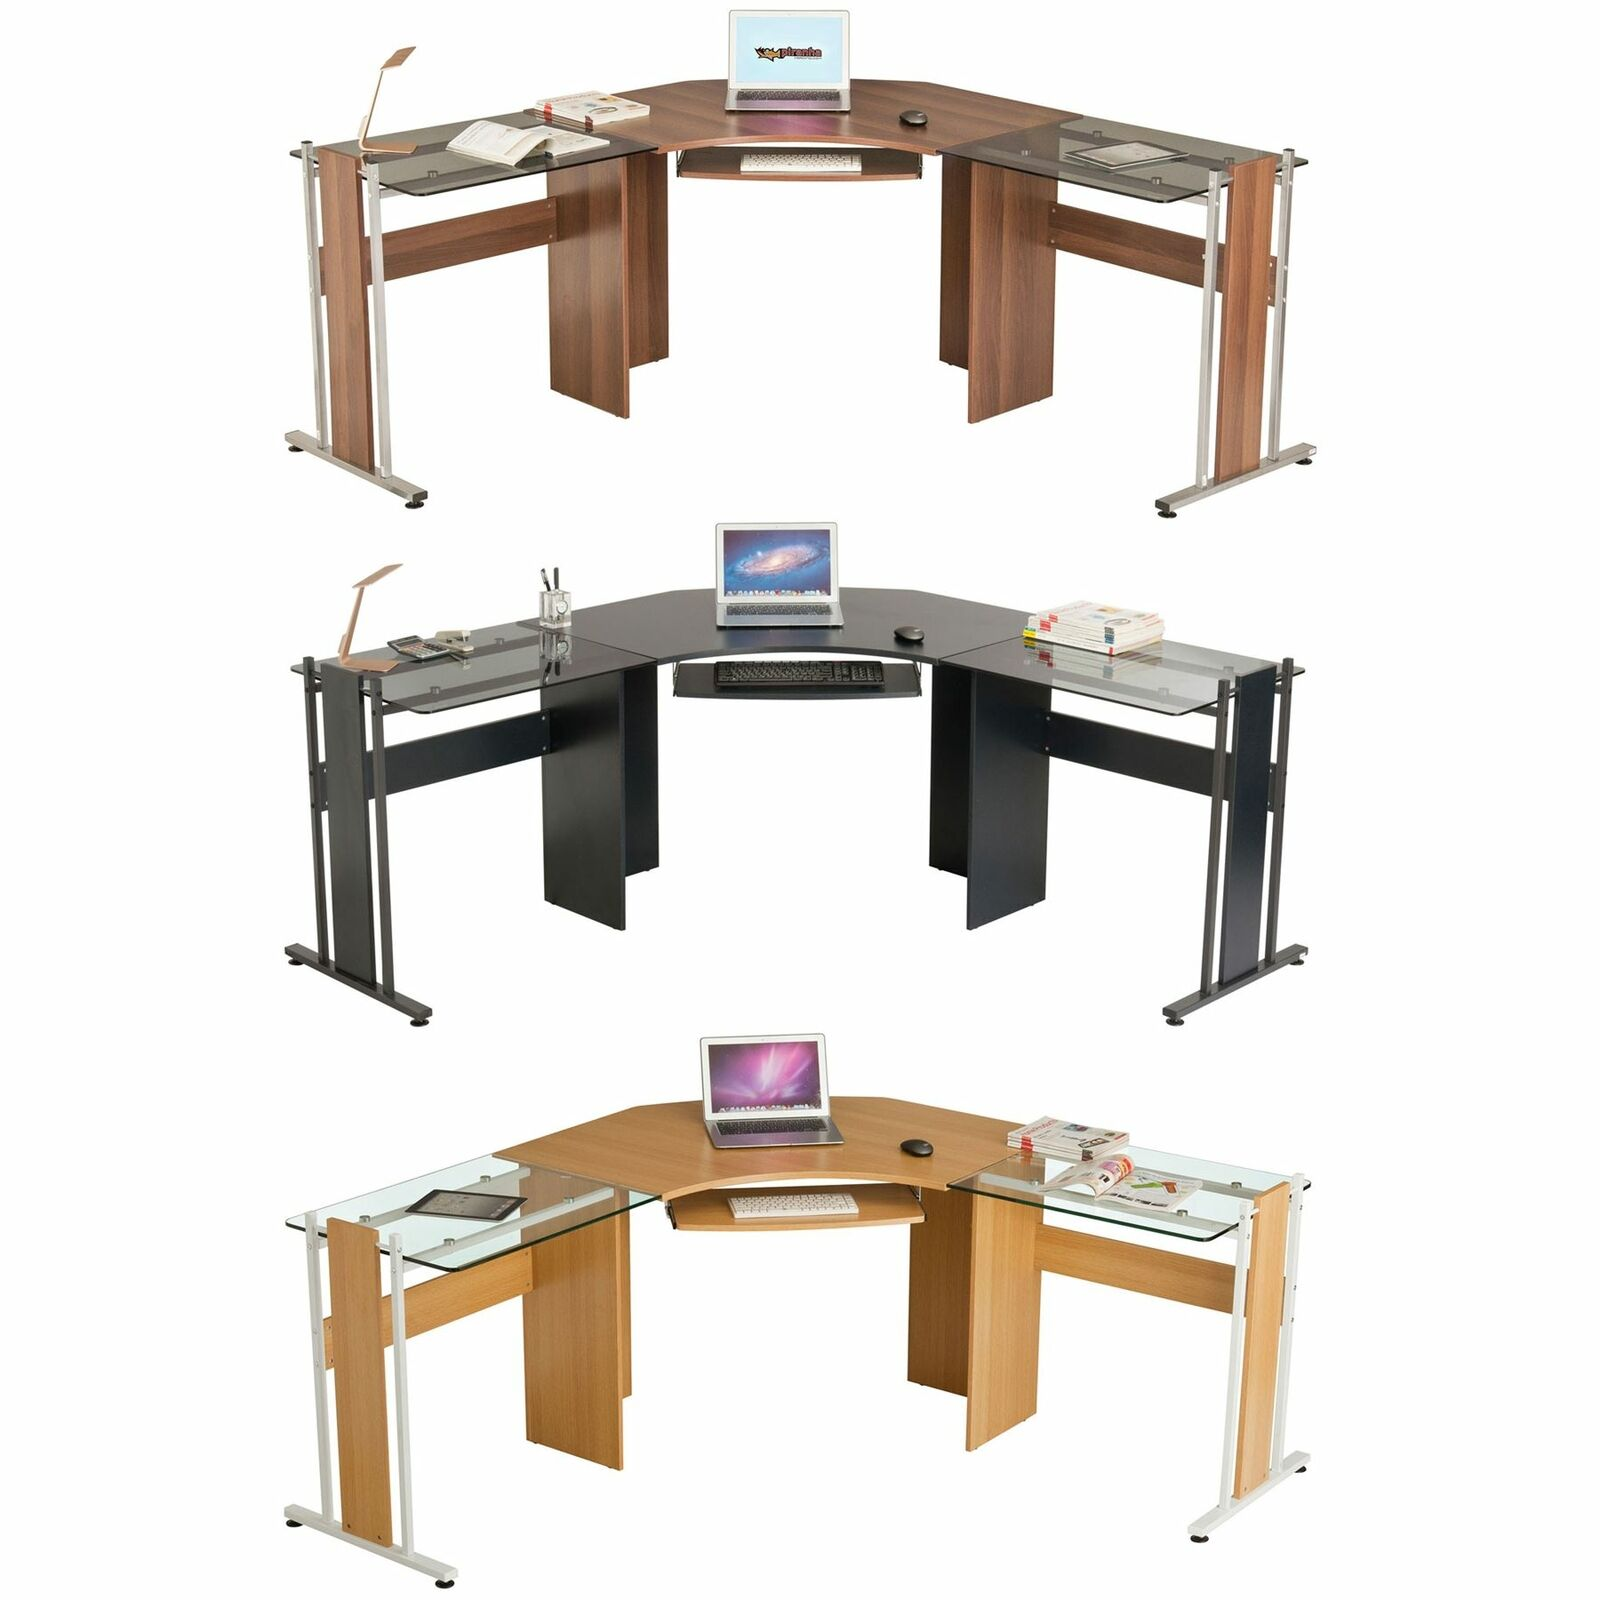 Large Corner Computer Desk For Home Office Gamers L Shaped Piranha Furniture 1 Of 2free